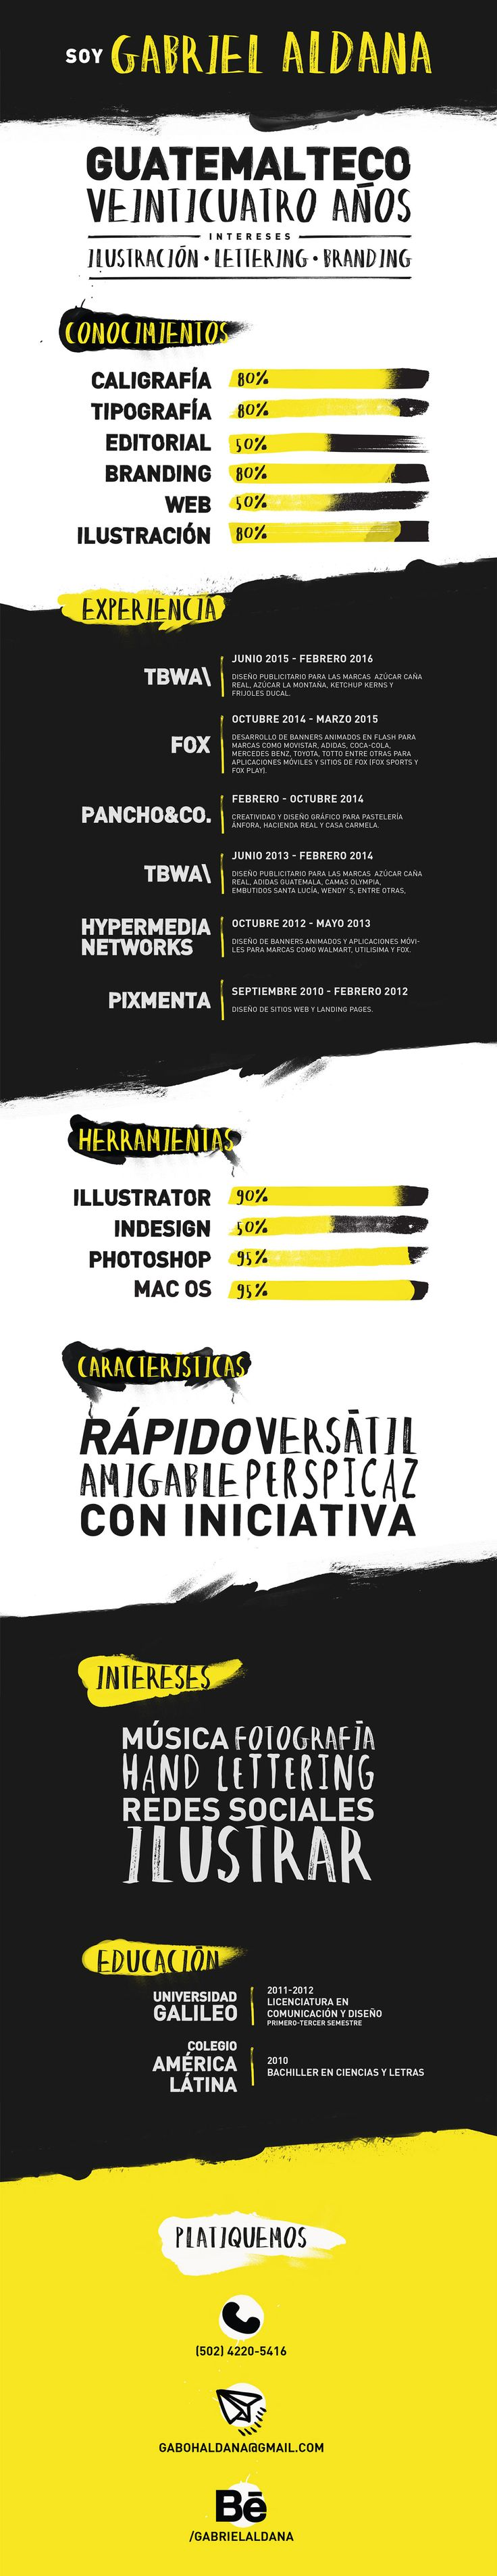 The 25 Best Inspiration CV Images On Pinterest